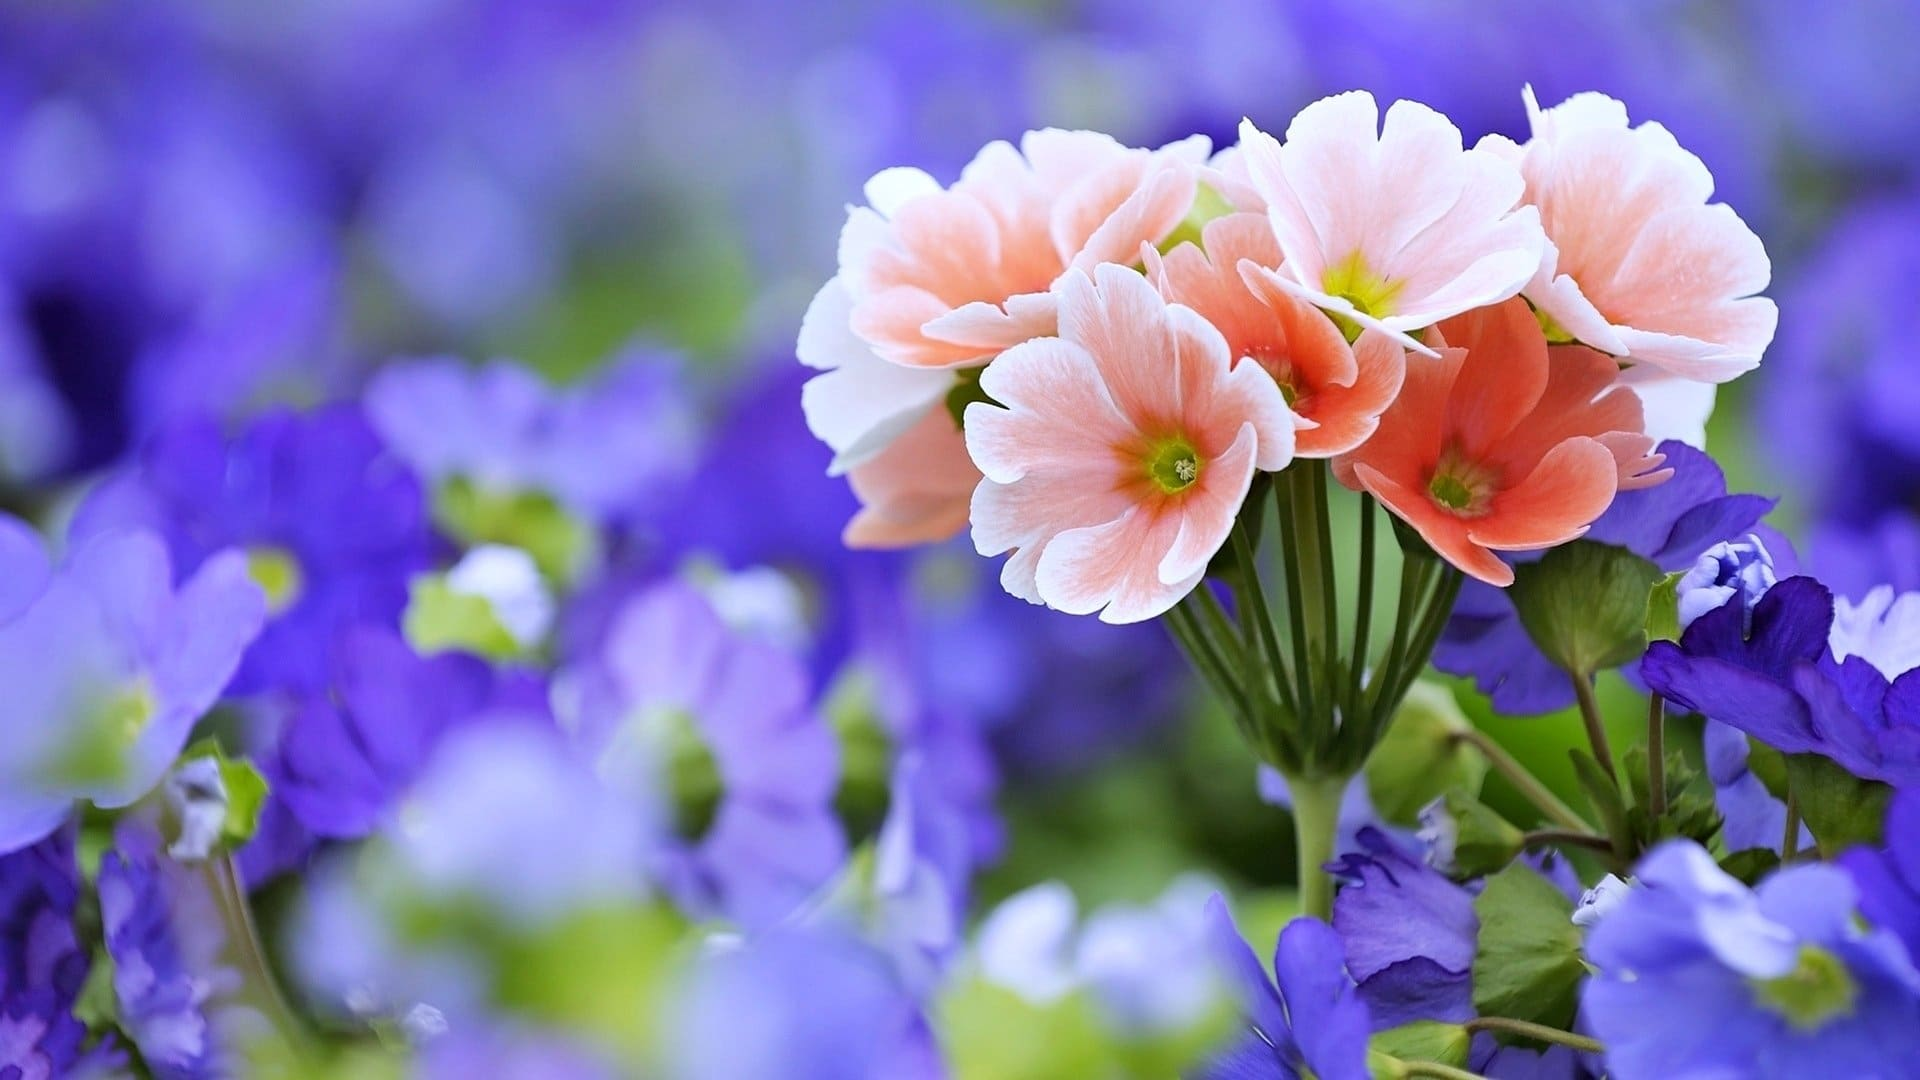 Flower background wallpapers